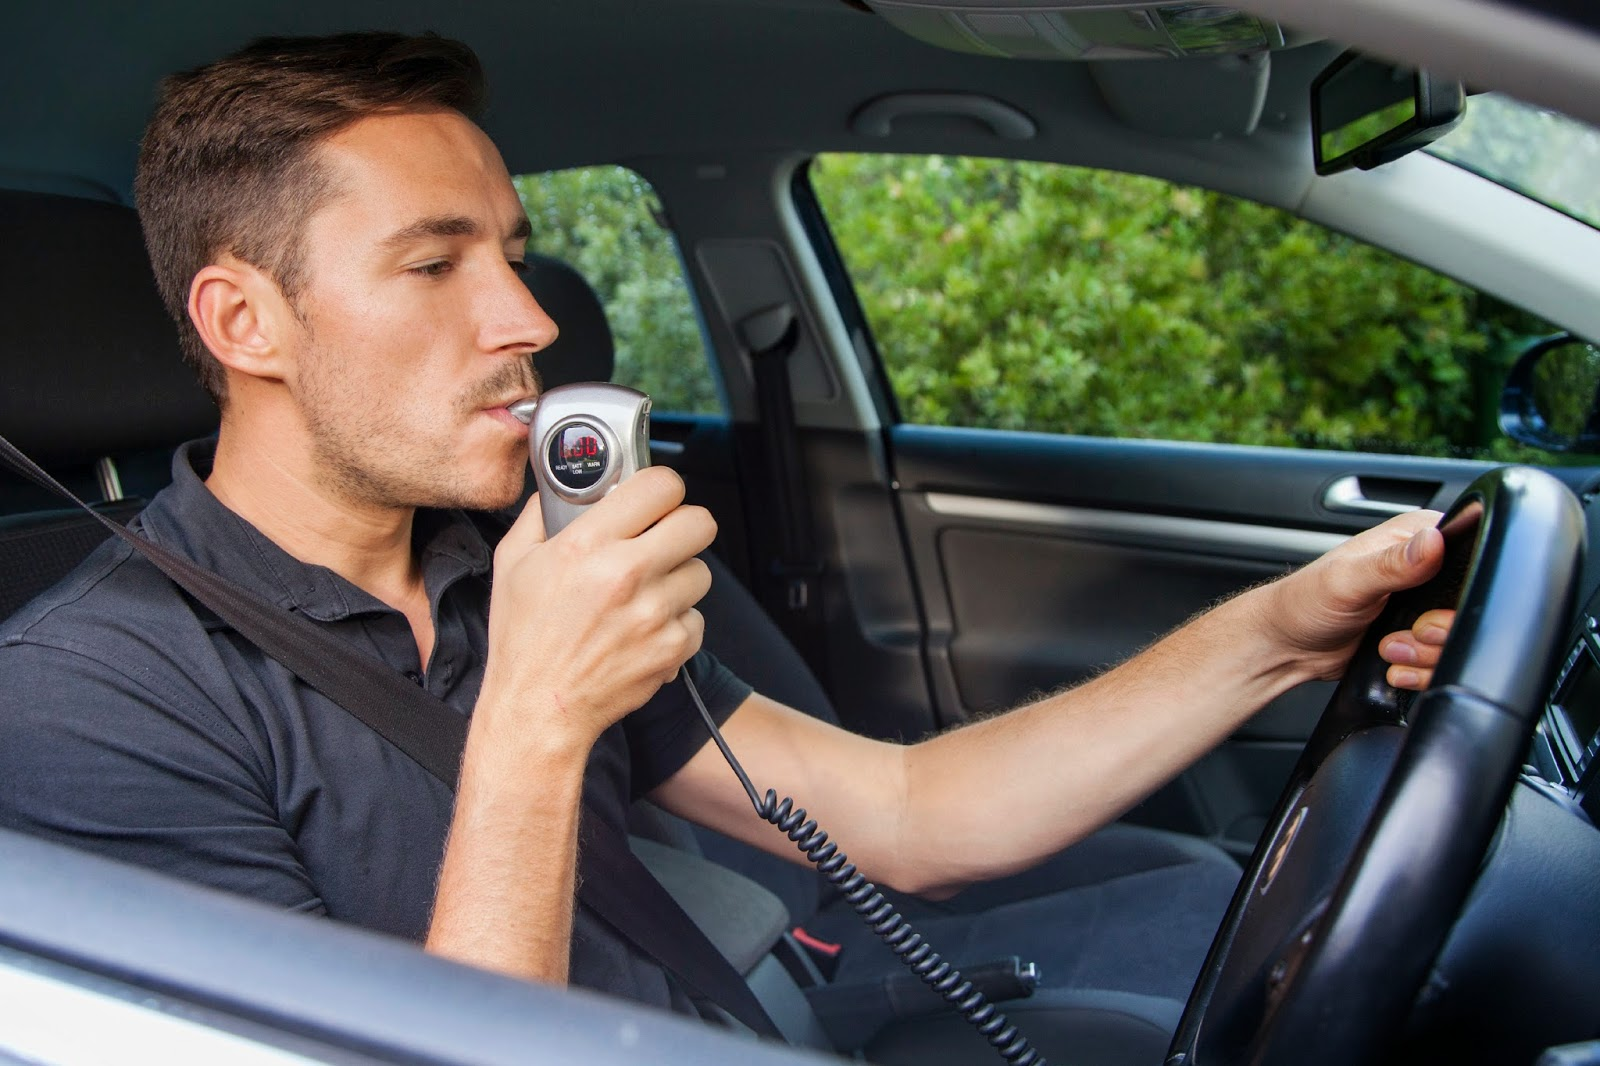 http://michigancriminalattorney.com/ignition-interlock-device-it/